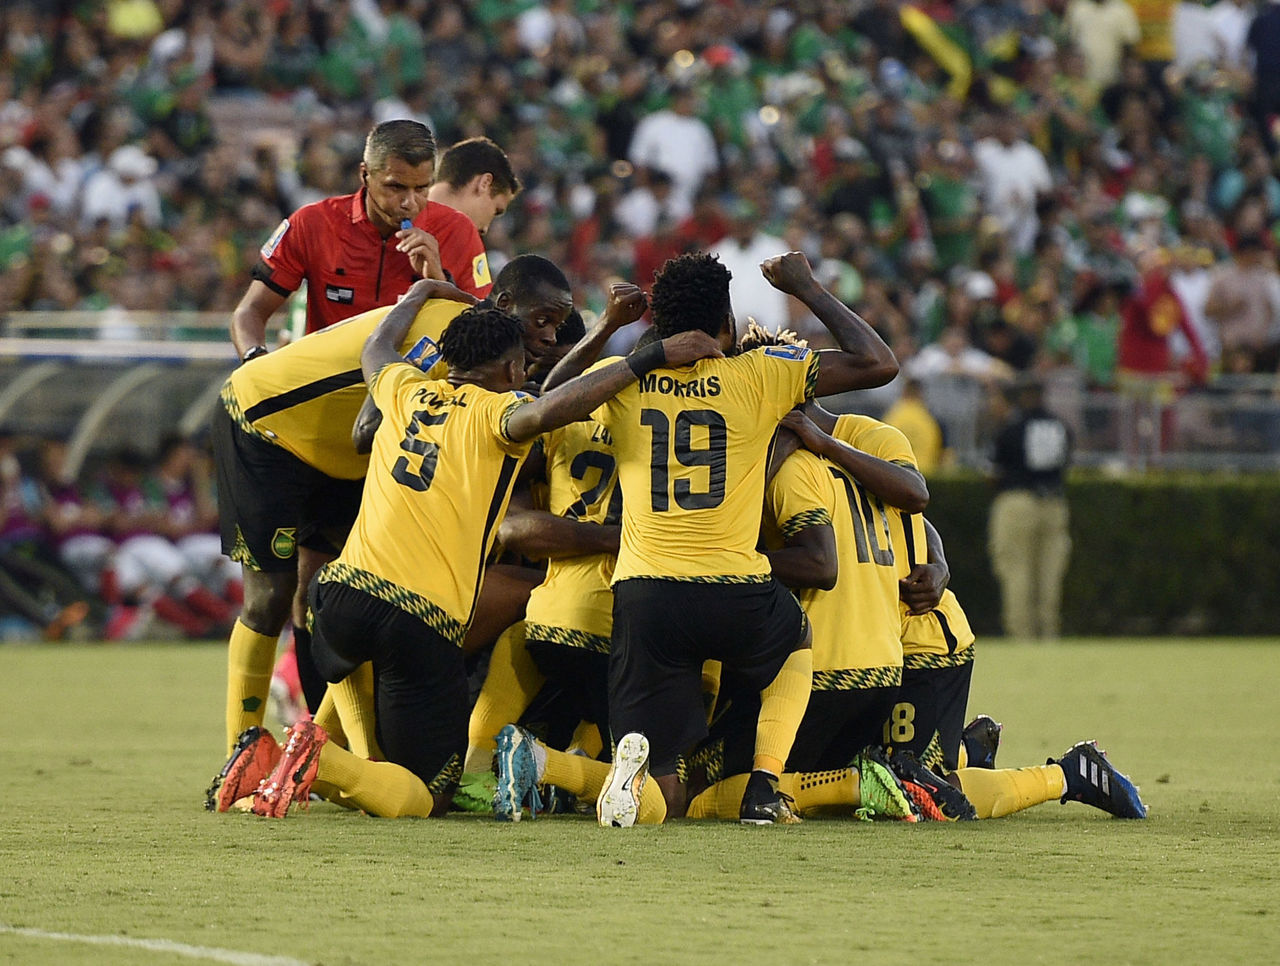 Cropped 2017 07 24t030959z 113770221 nocid rtrmadp 3 soccer 2017 concacaf gold cup mexico at jamaica